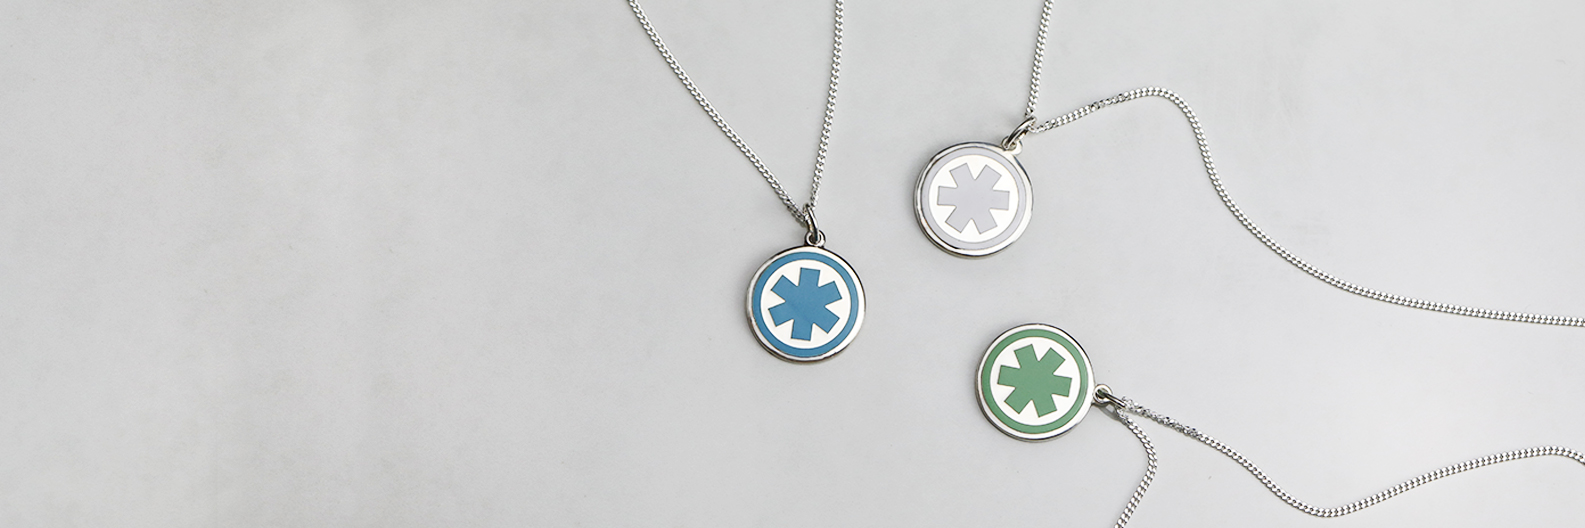 """<span style=""""color: #0c70af""""><strong>Stylish Pendants</span></strong></br><span style=""""color: #000000;"""">for Everyday Wear</span><br/>"""